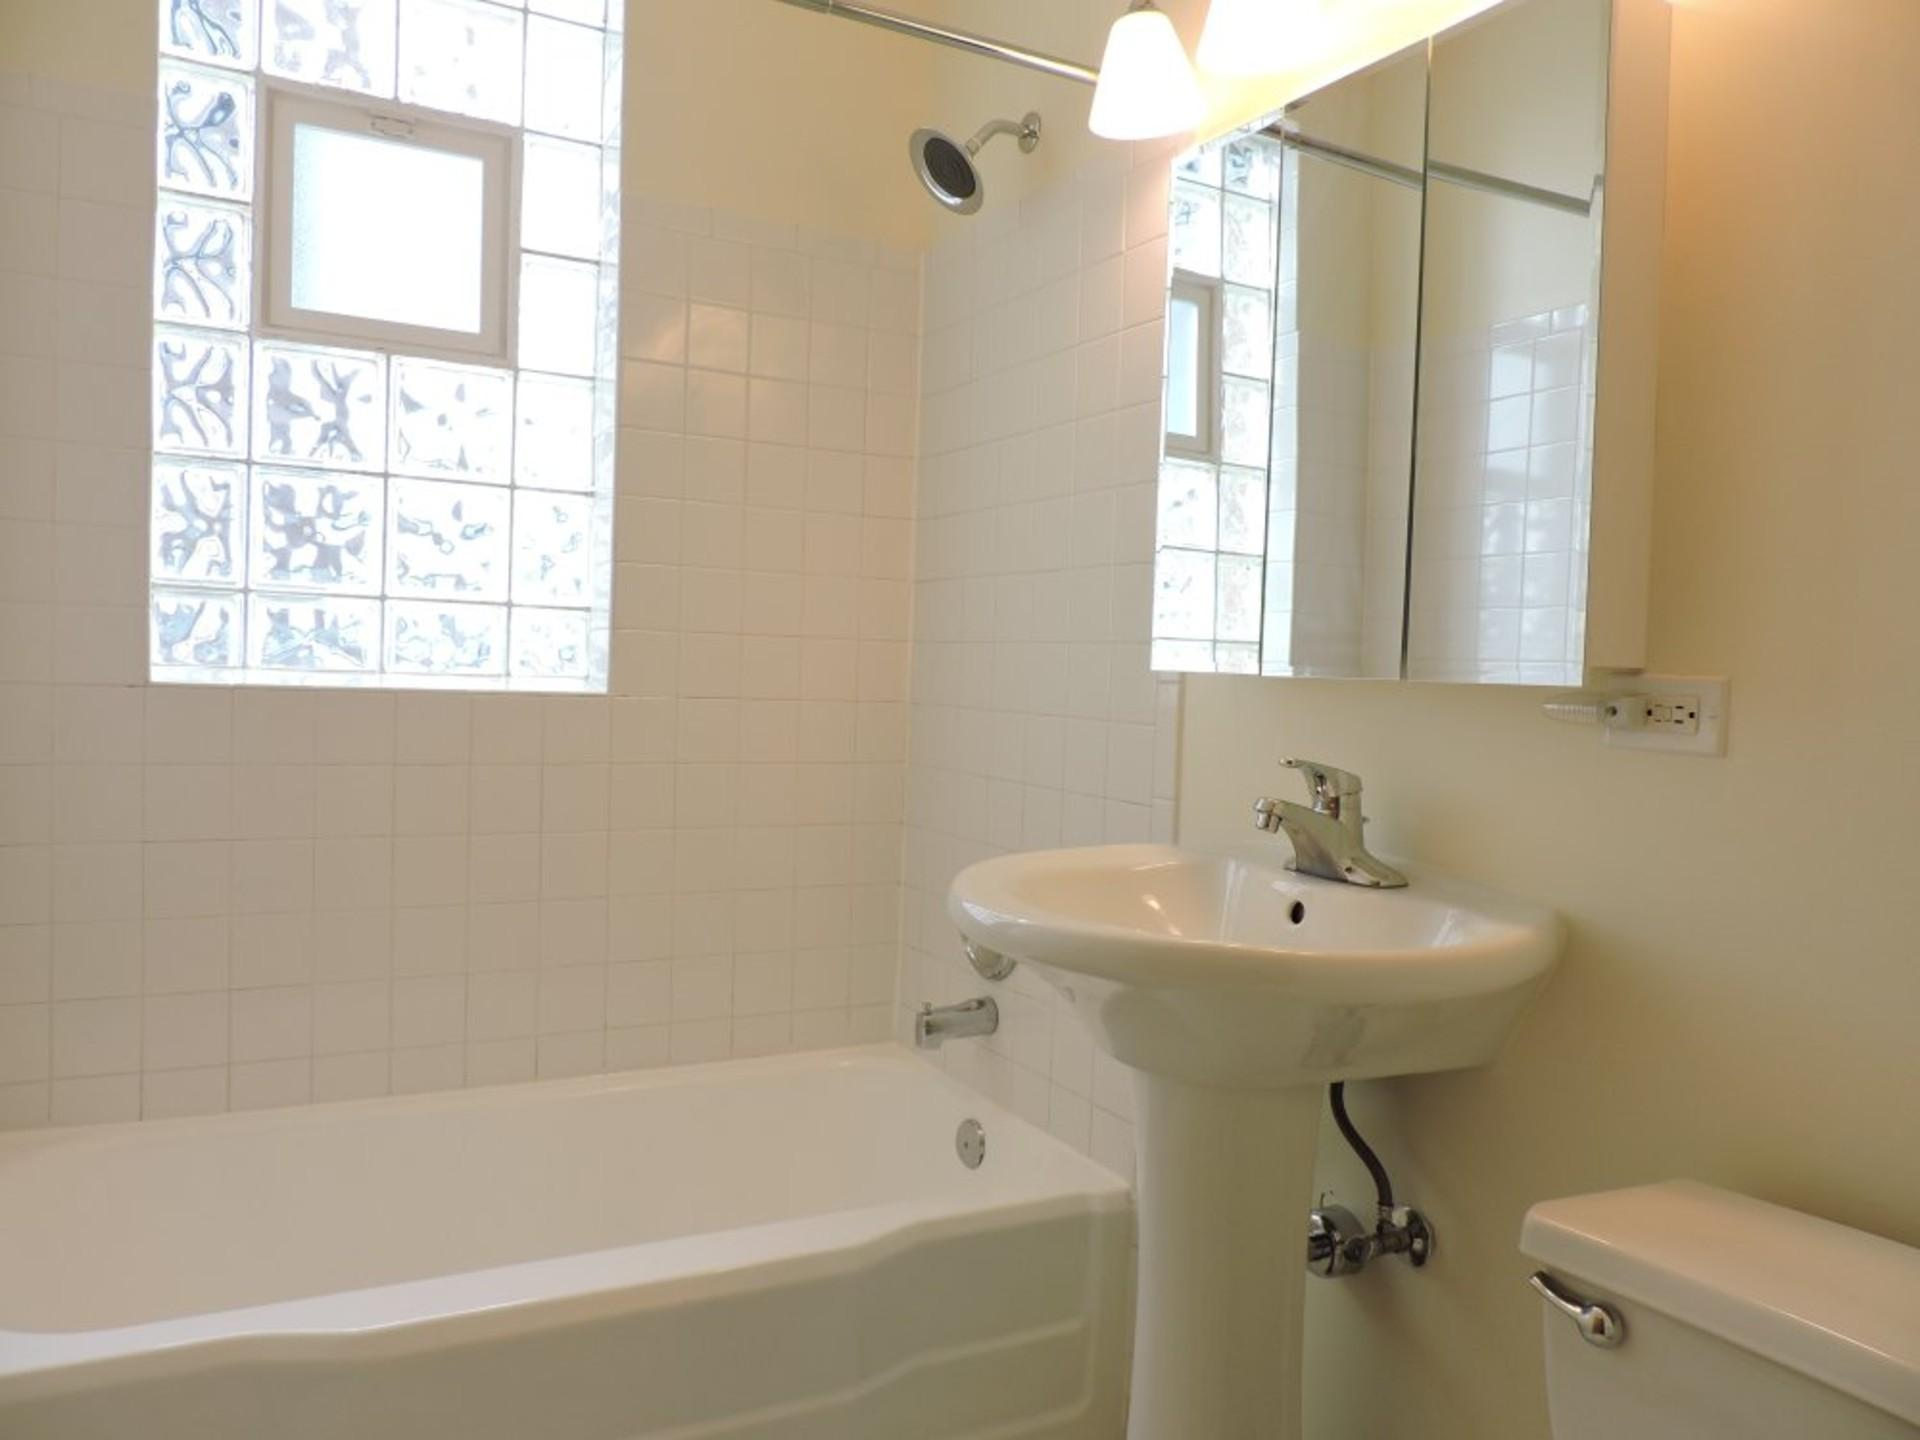 Sunny Two BR Deluxe Condo with SS Appliances, A/C, Parking, HEAT INCLUDED